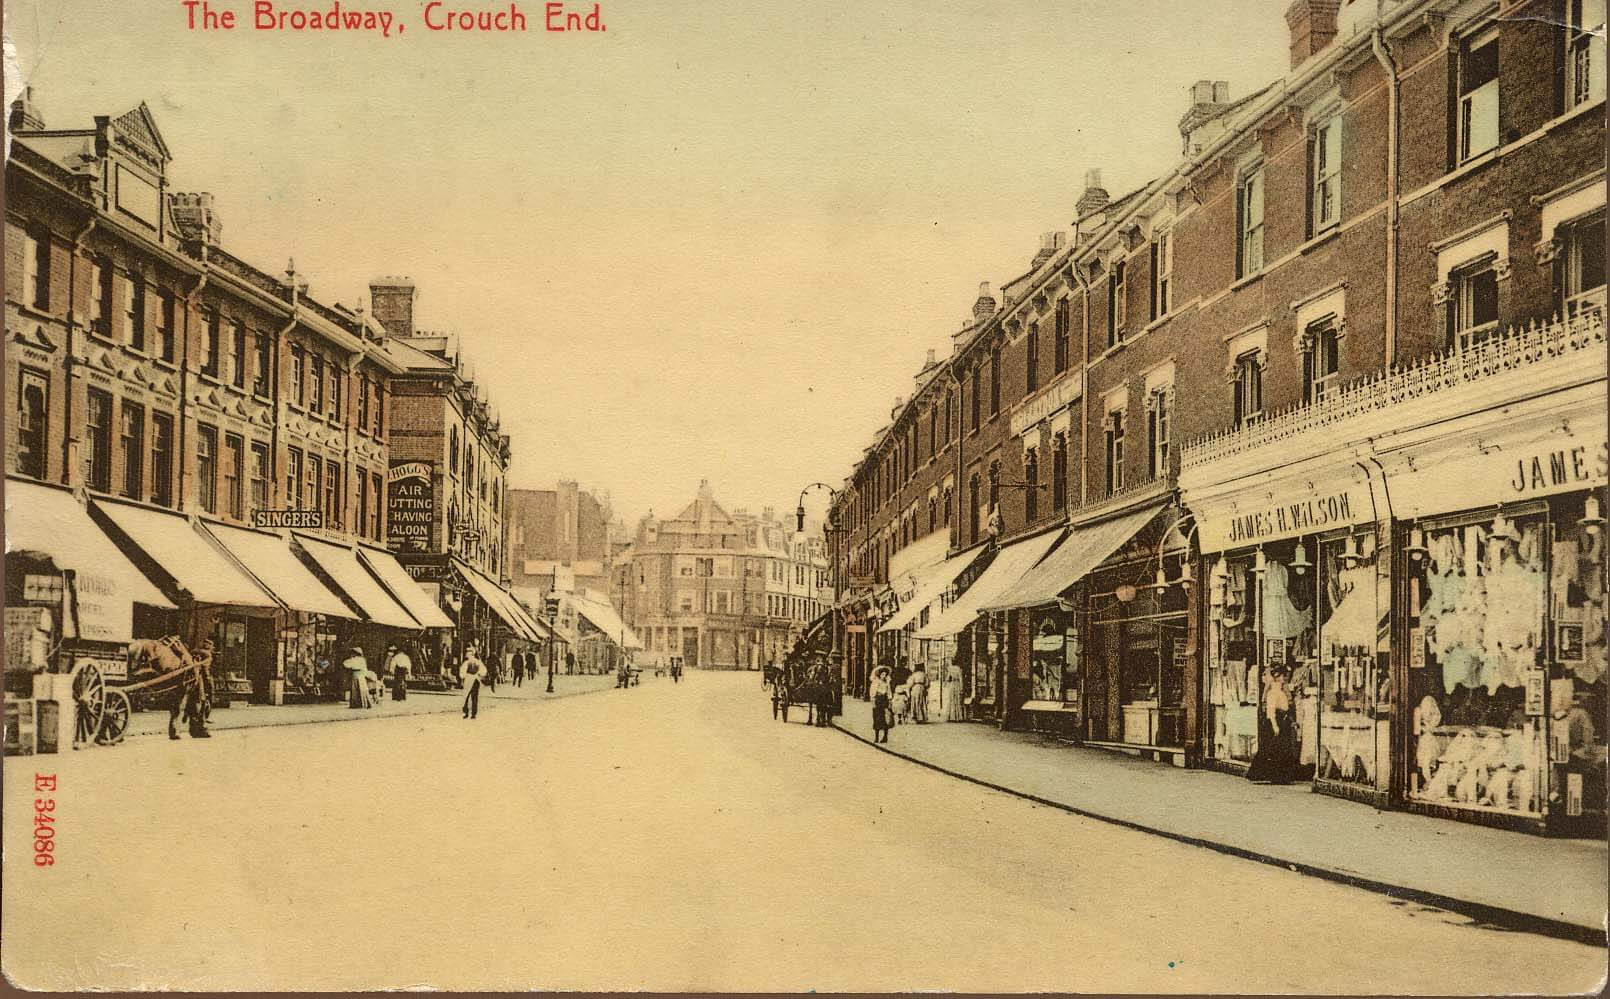 The Broadway, Crouch End,1904